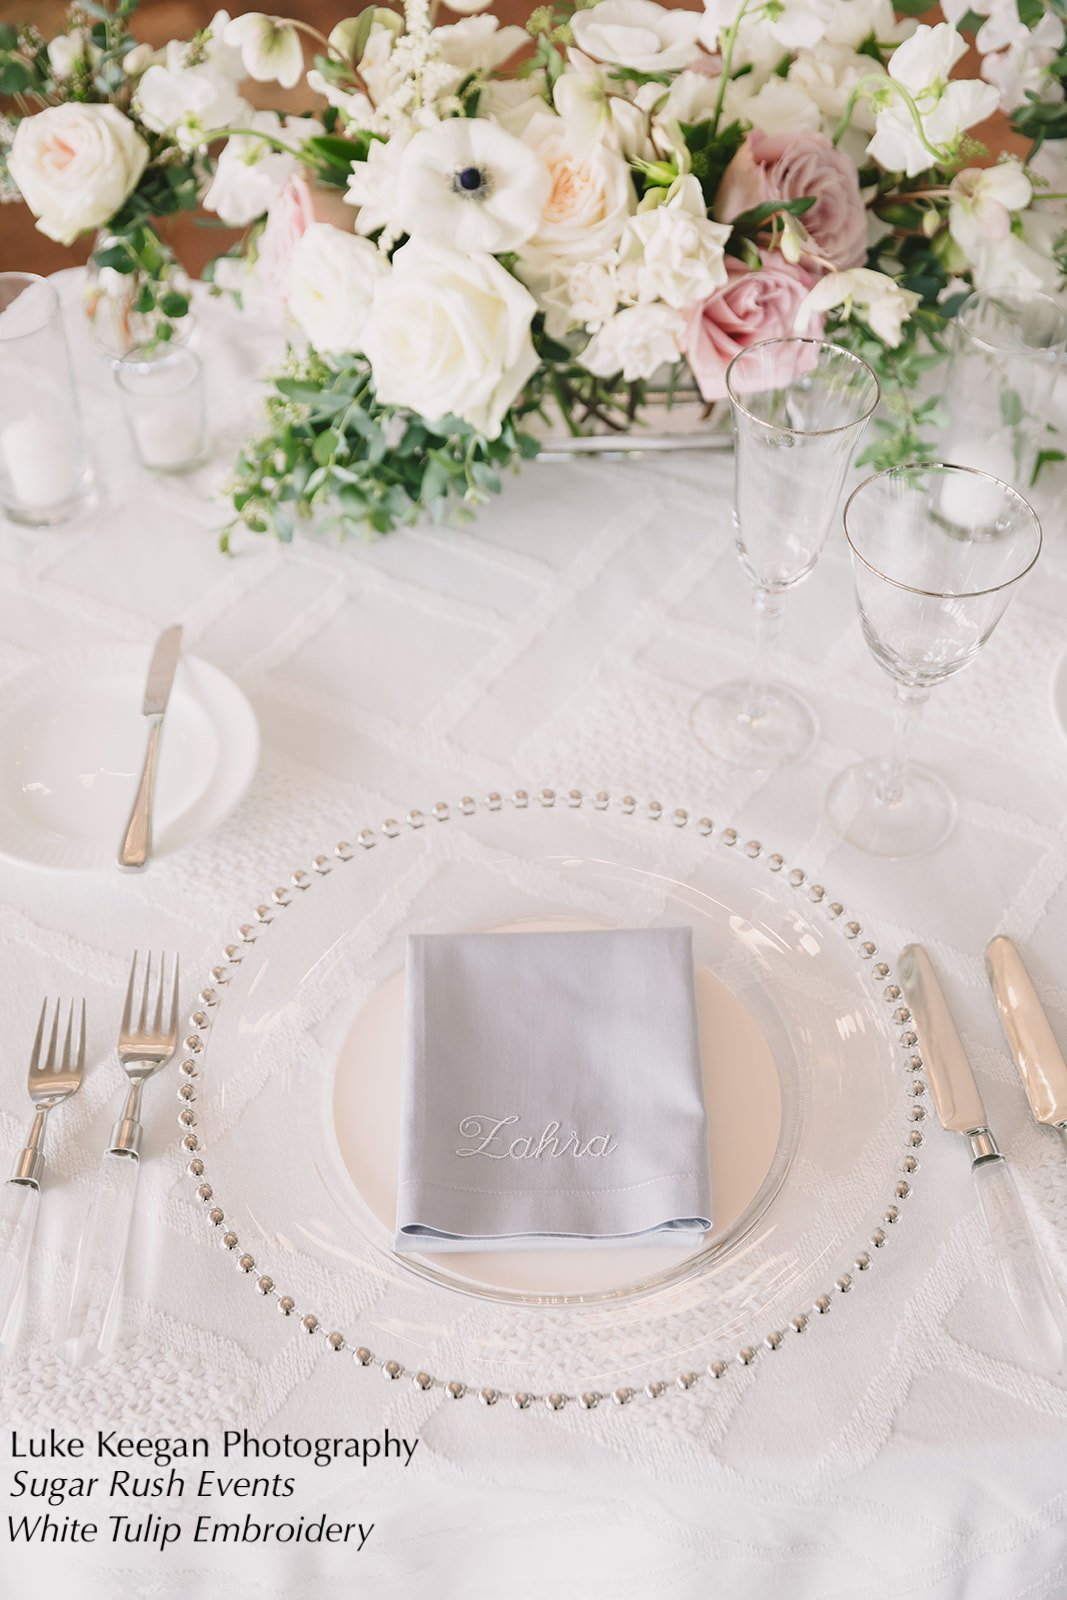 Bulk And Wedding Napkins Single Letter Bulk Napkins Two Letter Bulk Napkins Three Letter Bulk Napkins Individual Name Napkins Place Card Napkins Bride And Groom Napkins All Bulk Napkins Single Initial Monogrammed Napkins Two Initial